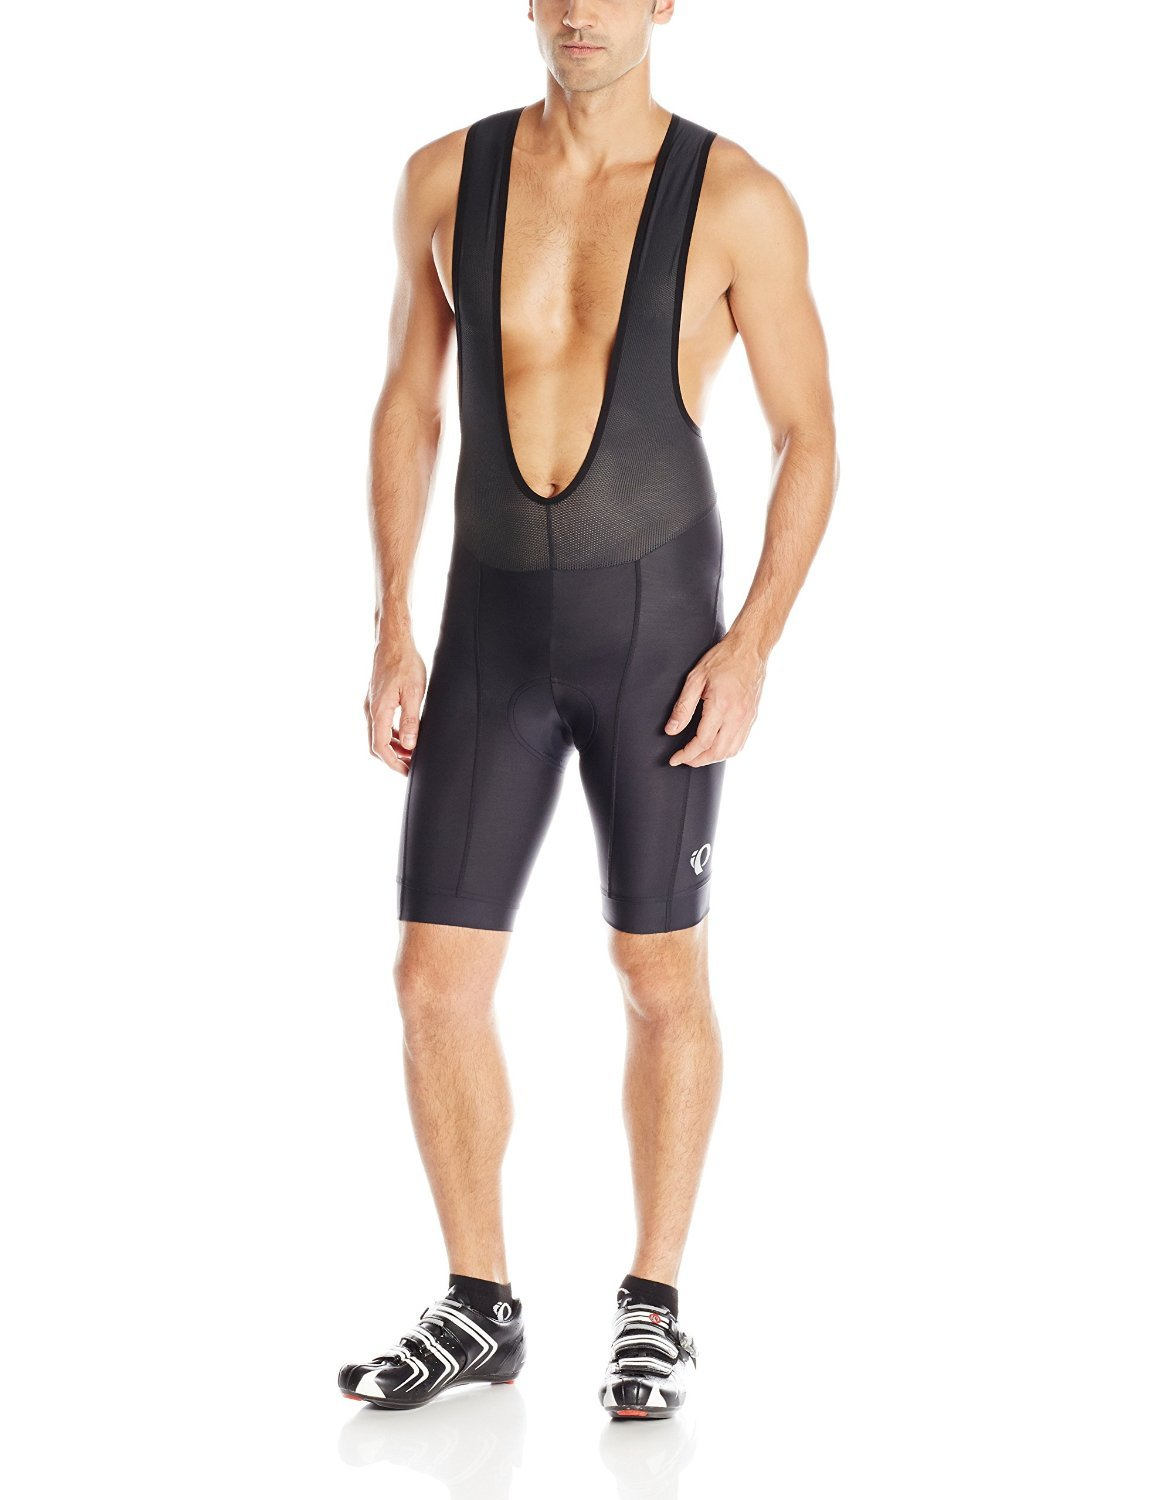 Pearl Izumi - Ride Men's Attack Bib Shorts, Black, Medium